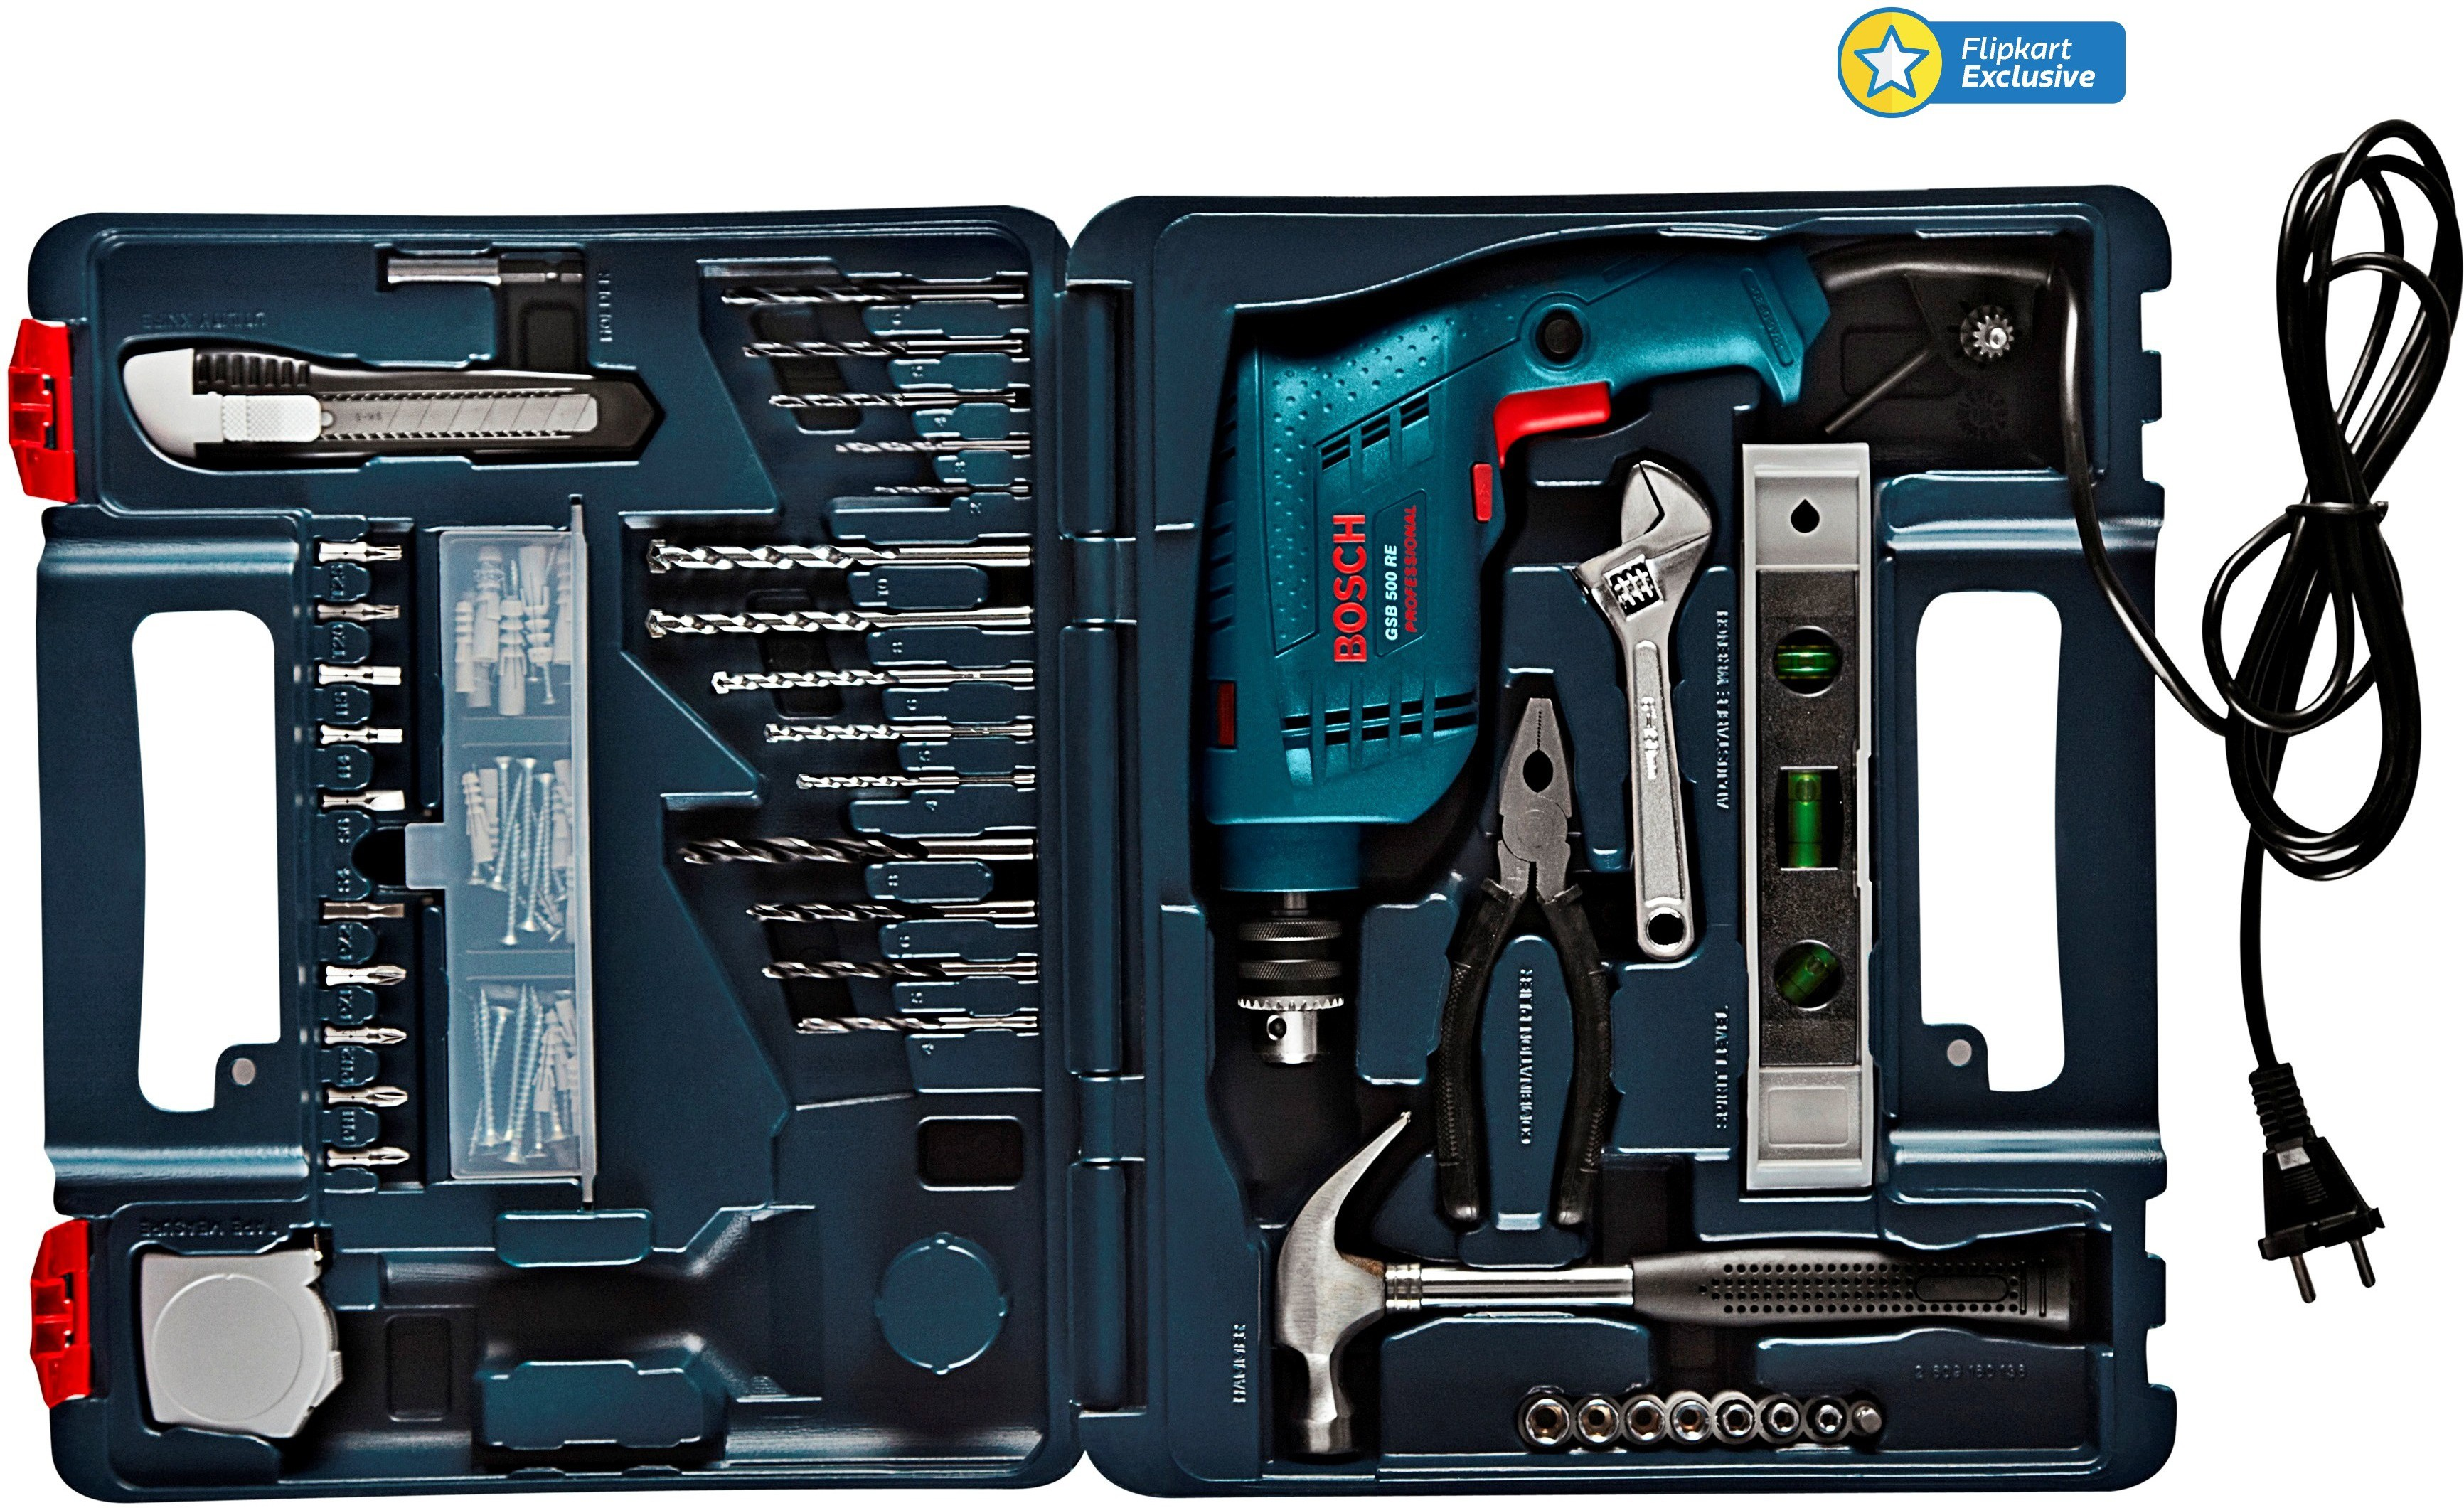 Flipkart - Bosch 500 RE At Just Rs.2849